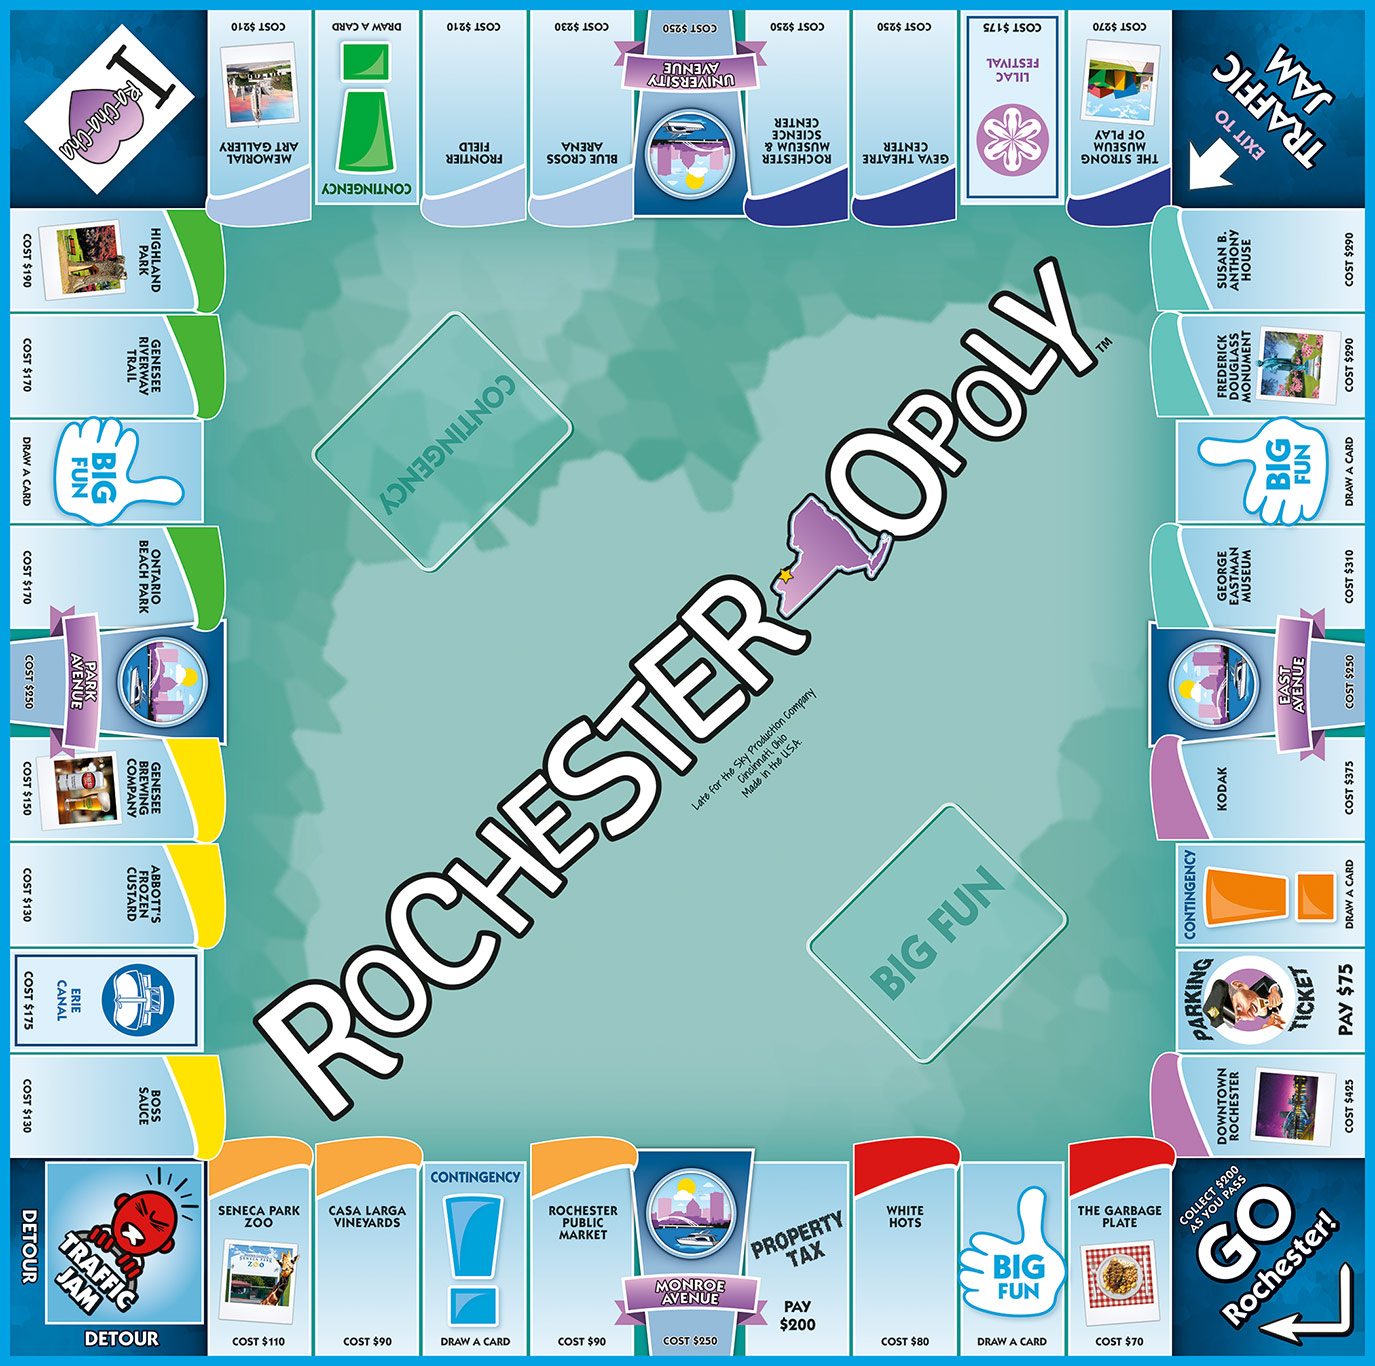 ROCHESTER-OPOLY Board Game